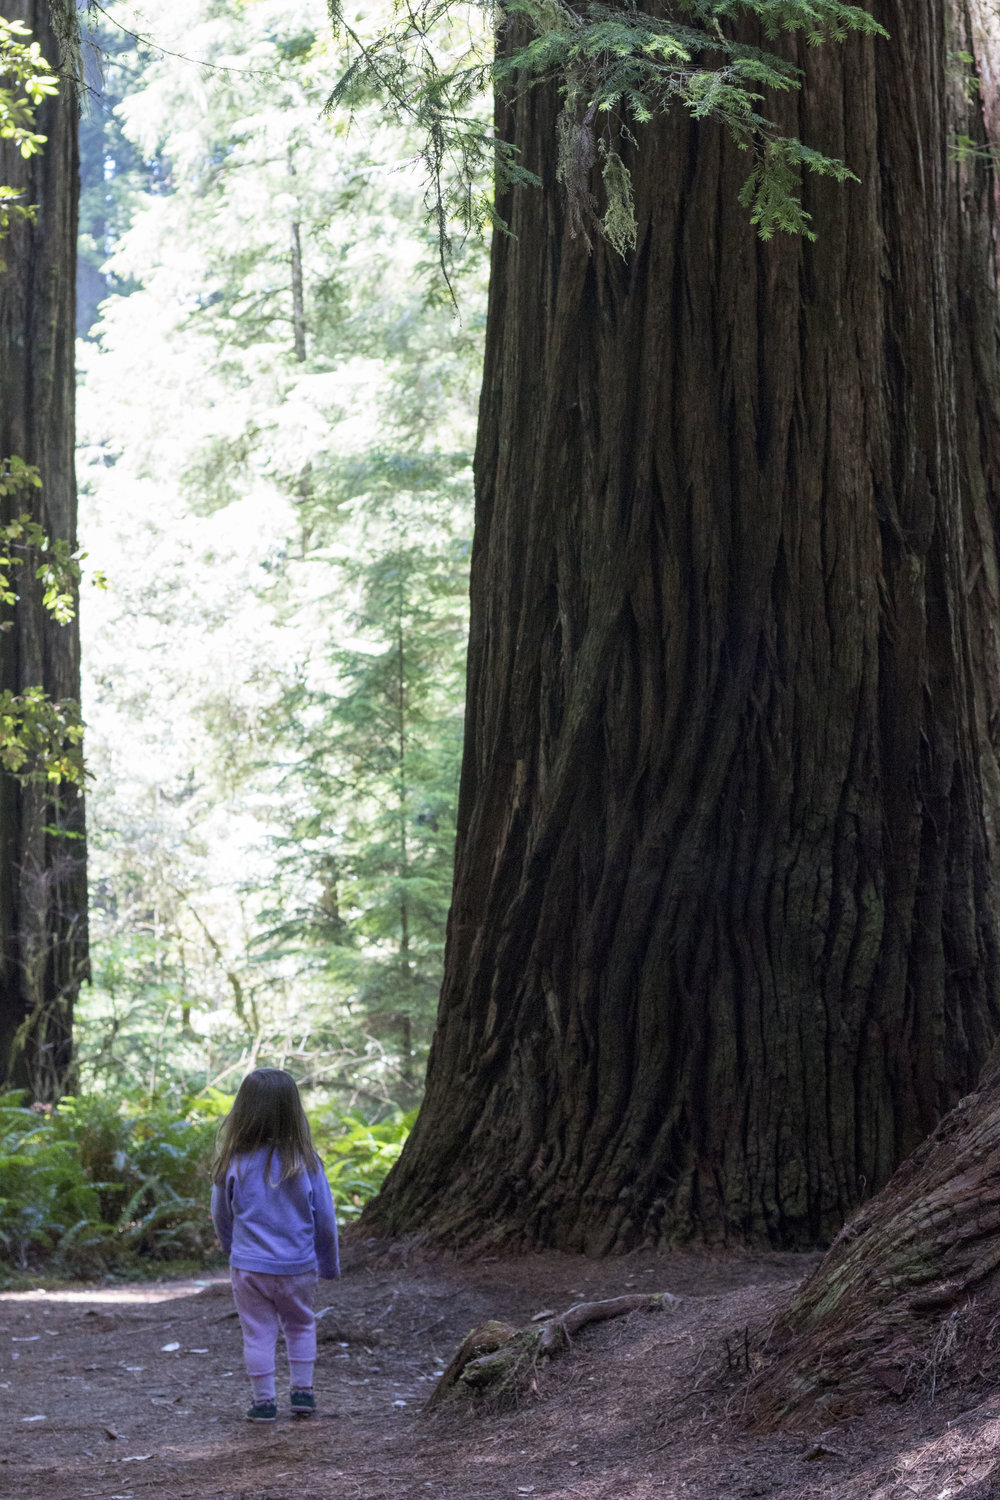 Even a short walk in the redwoods leaves you with lasting memories.